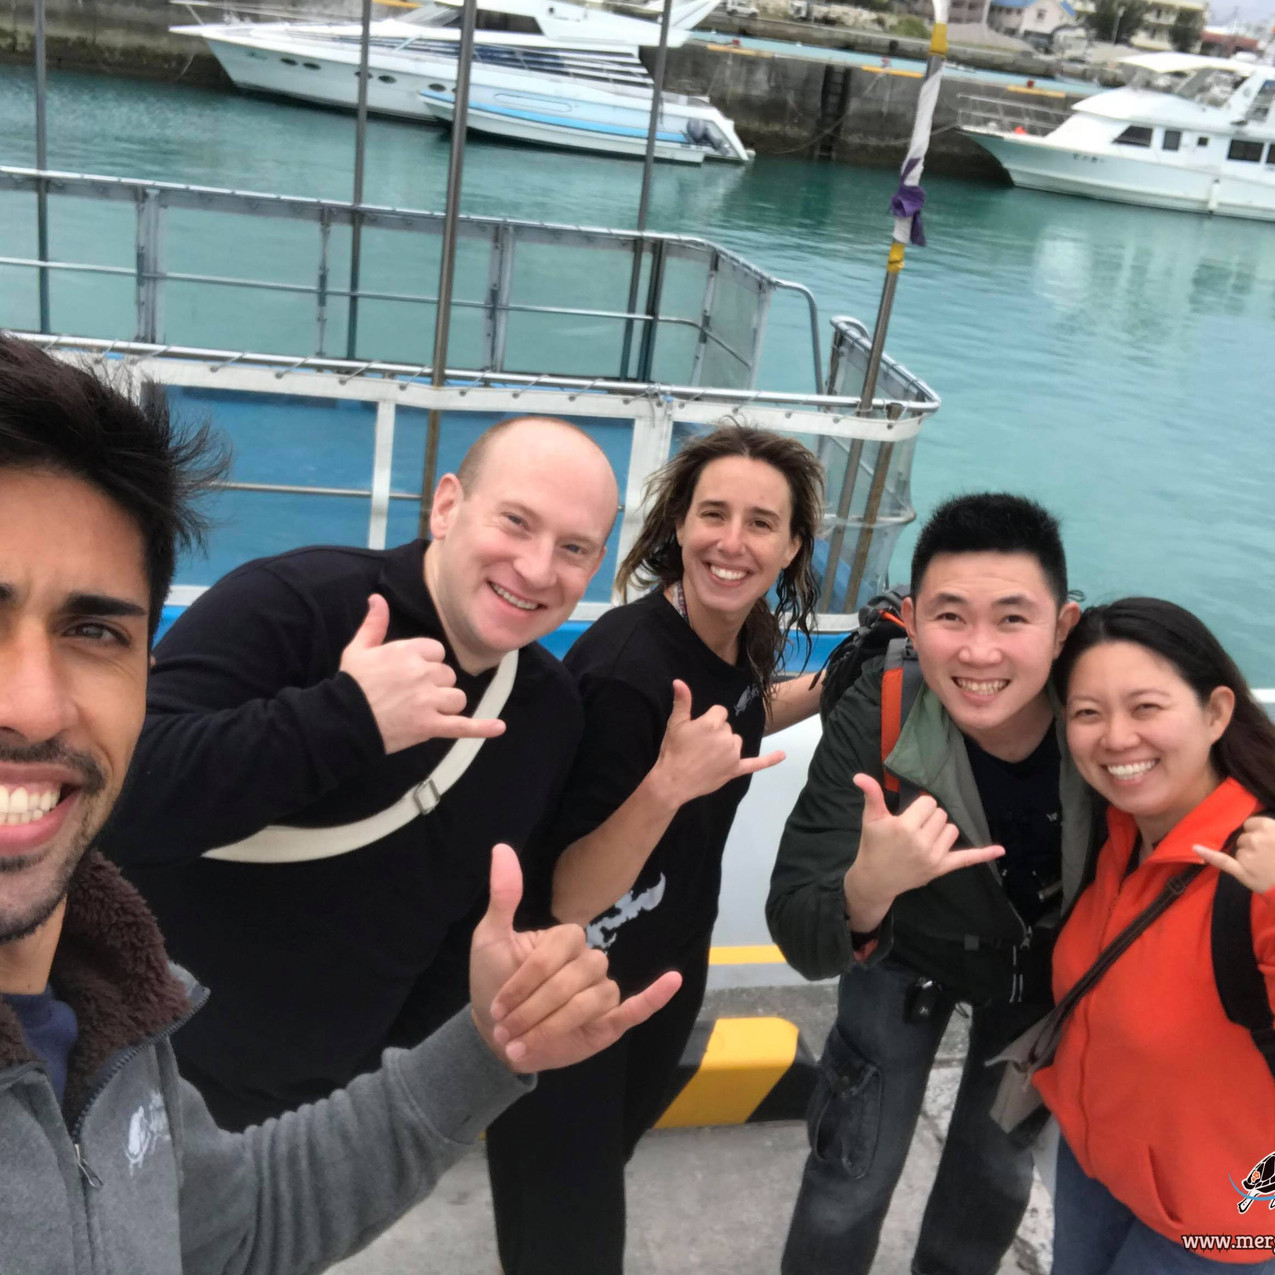 Fun divers doing boat dives during winter time in Okinawa with Aloha Divers Okinawa.